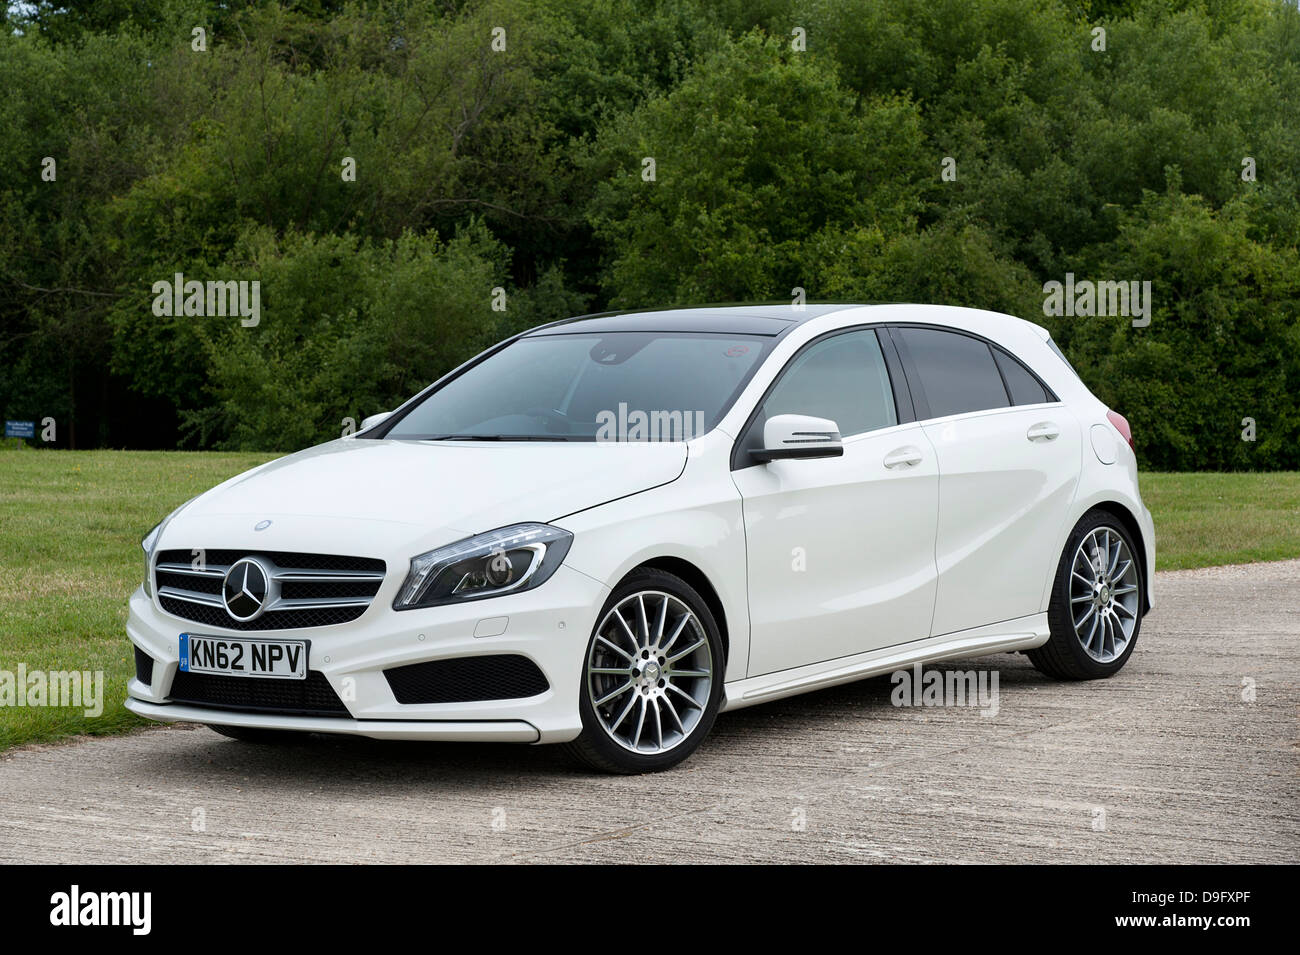 mercedes a class amg stockfotos mercedes a class amg bilder alamy. Black Bedroom Furniture Sets. Home Design Ideas